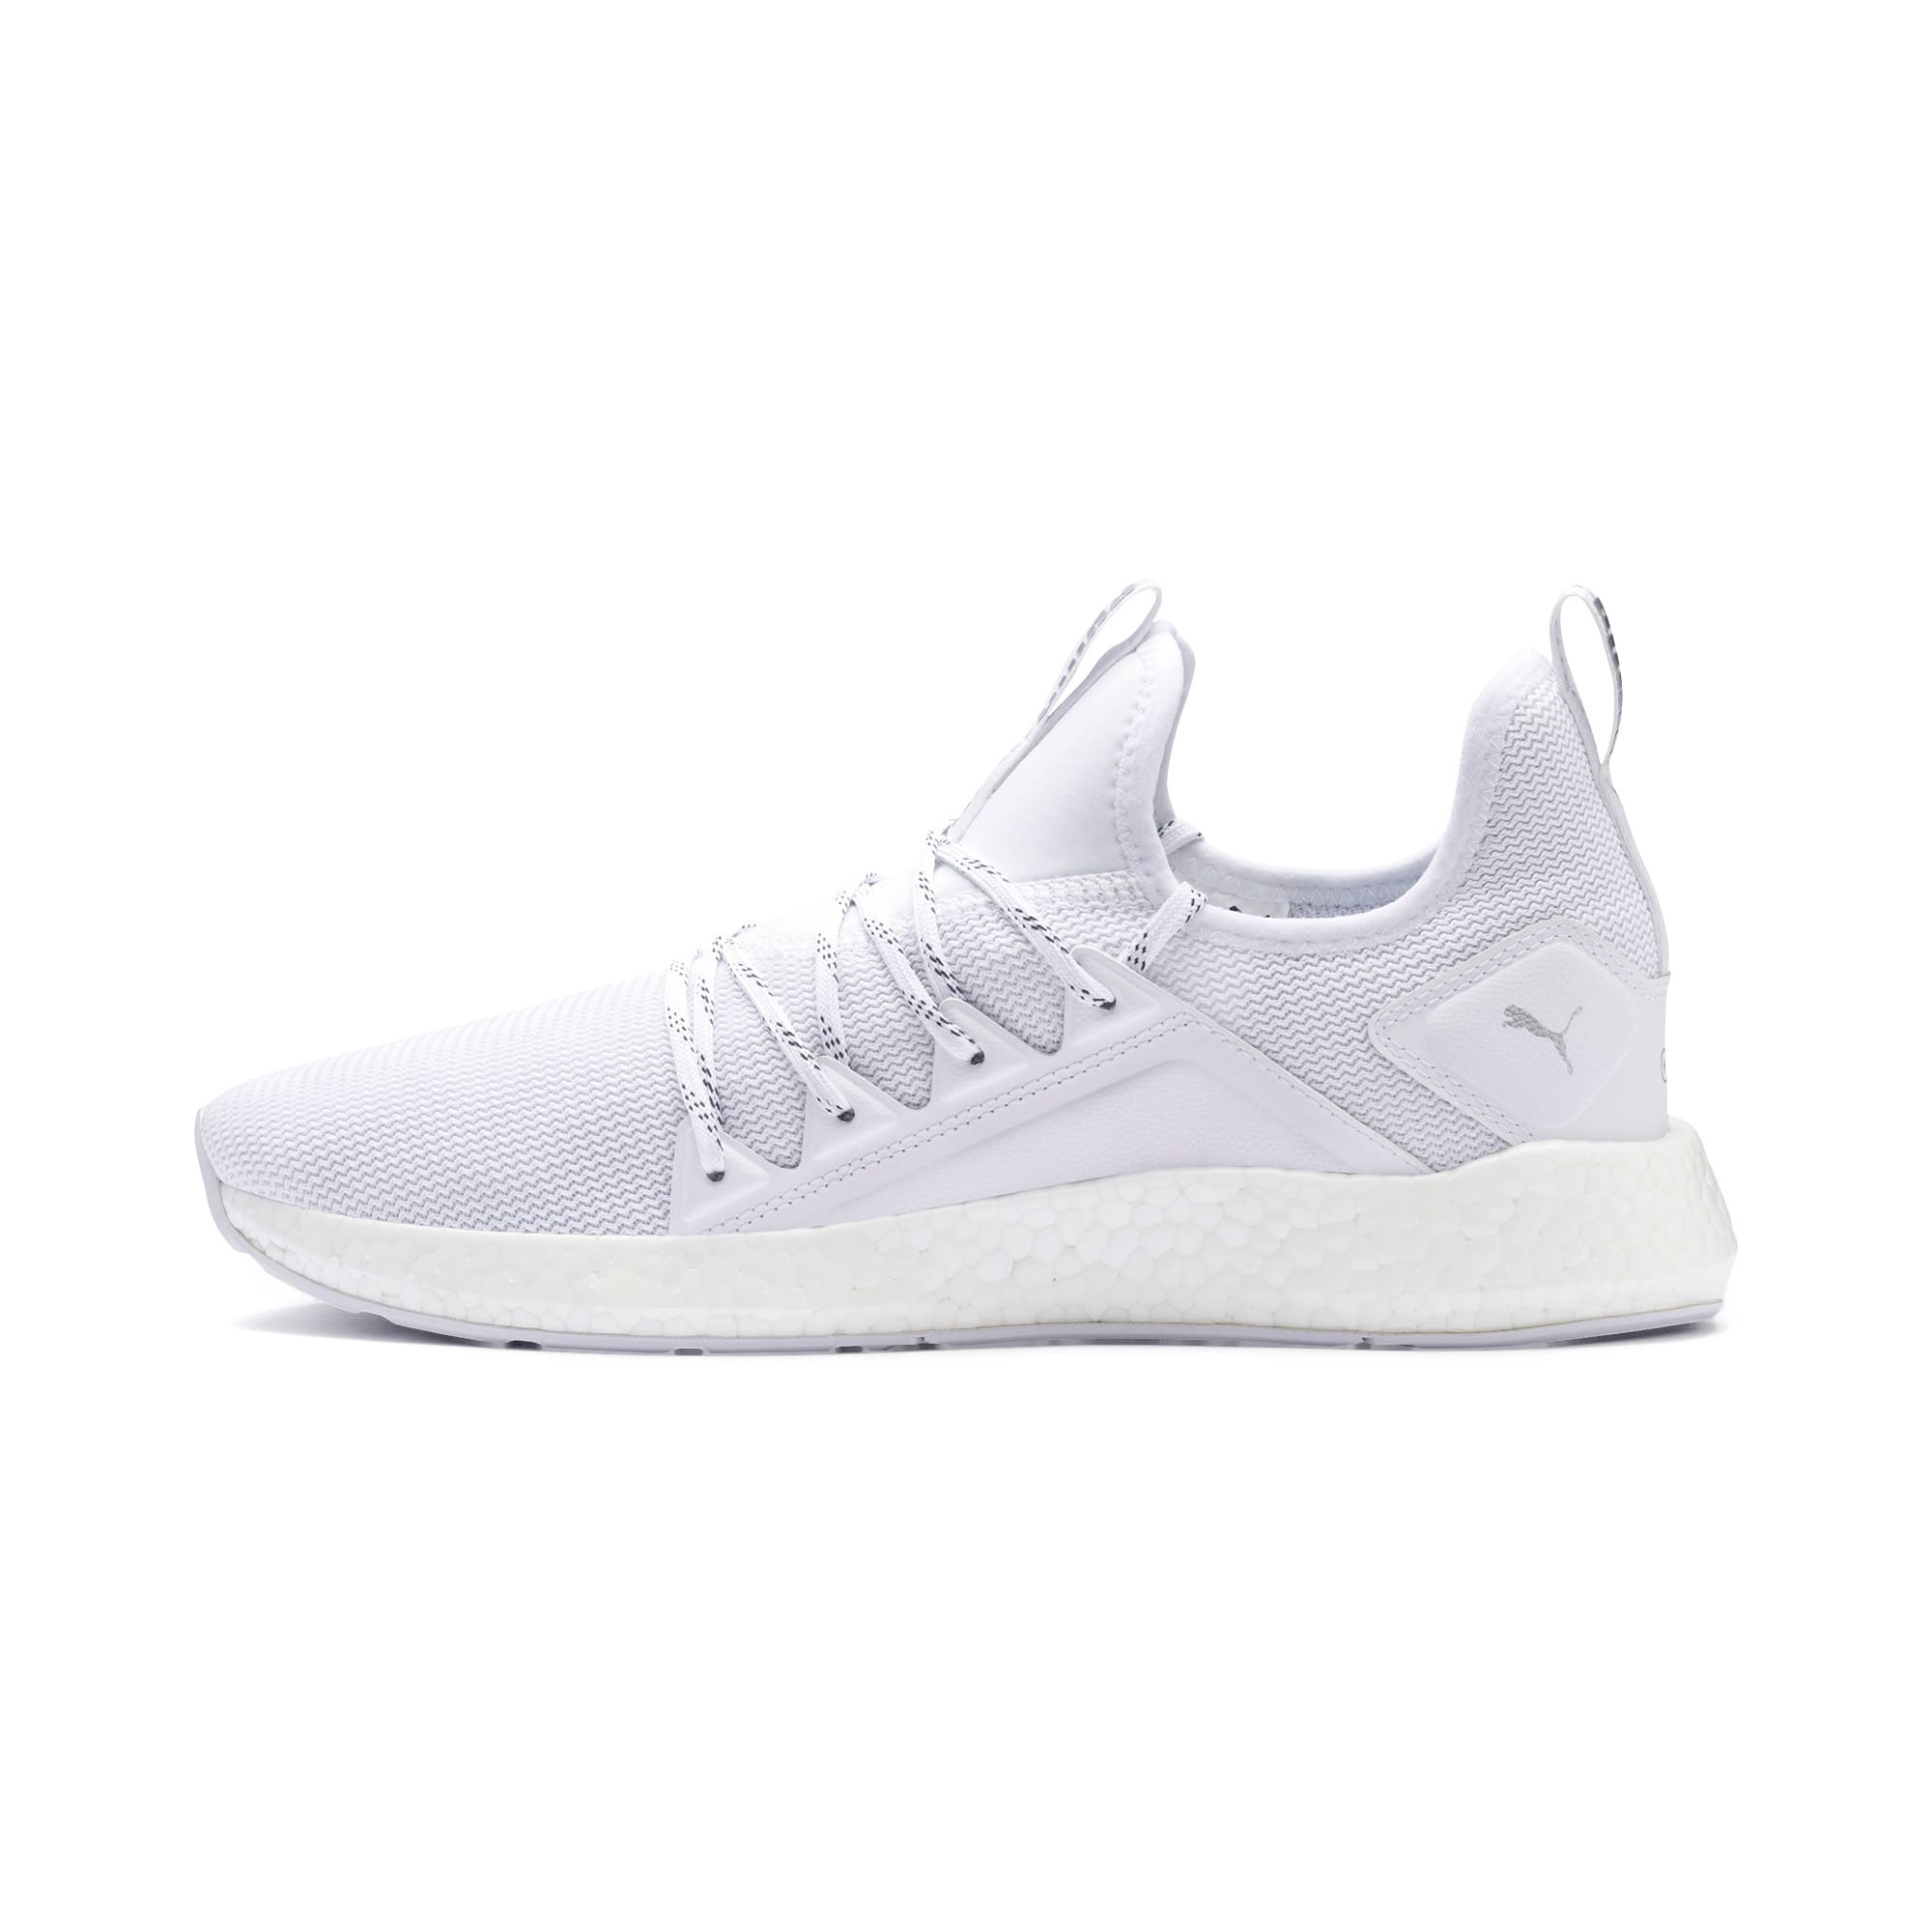 Thumbnail 1 of NRGY Neko Lights Men's Running Shoes, Puma White, medium